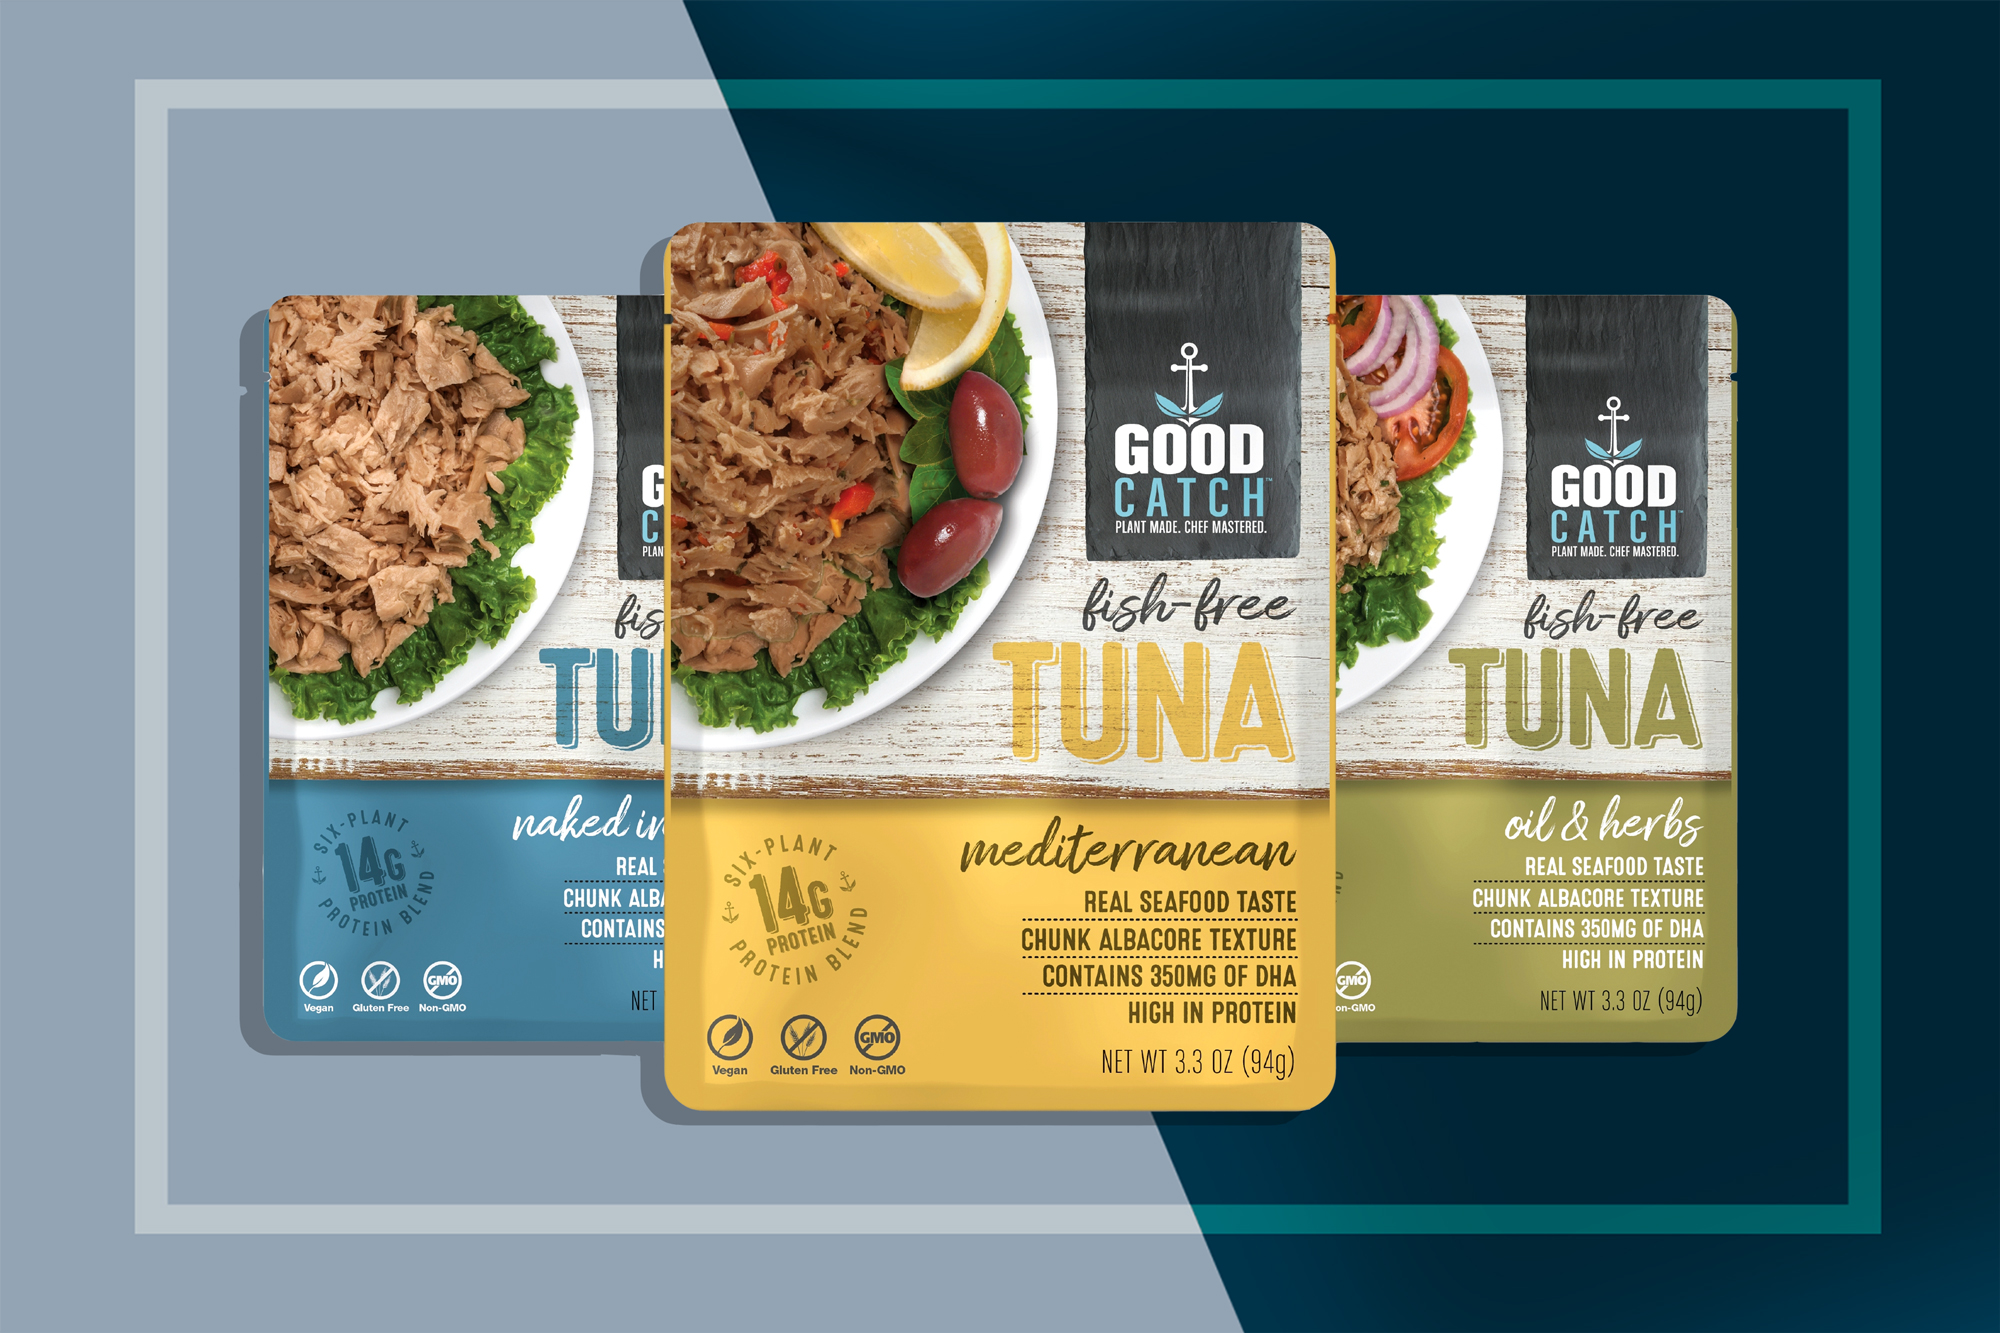 Bumble Bee Tuna Plant Based